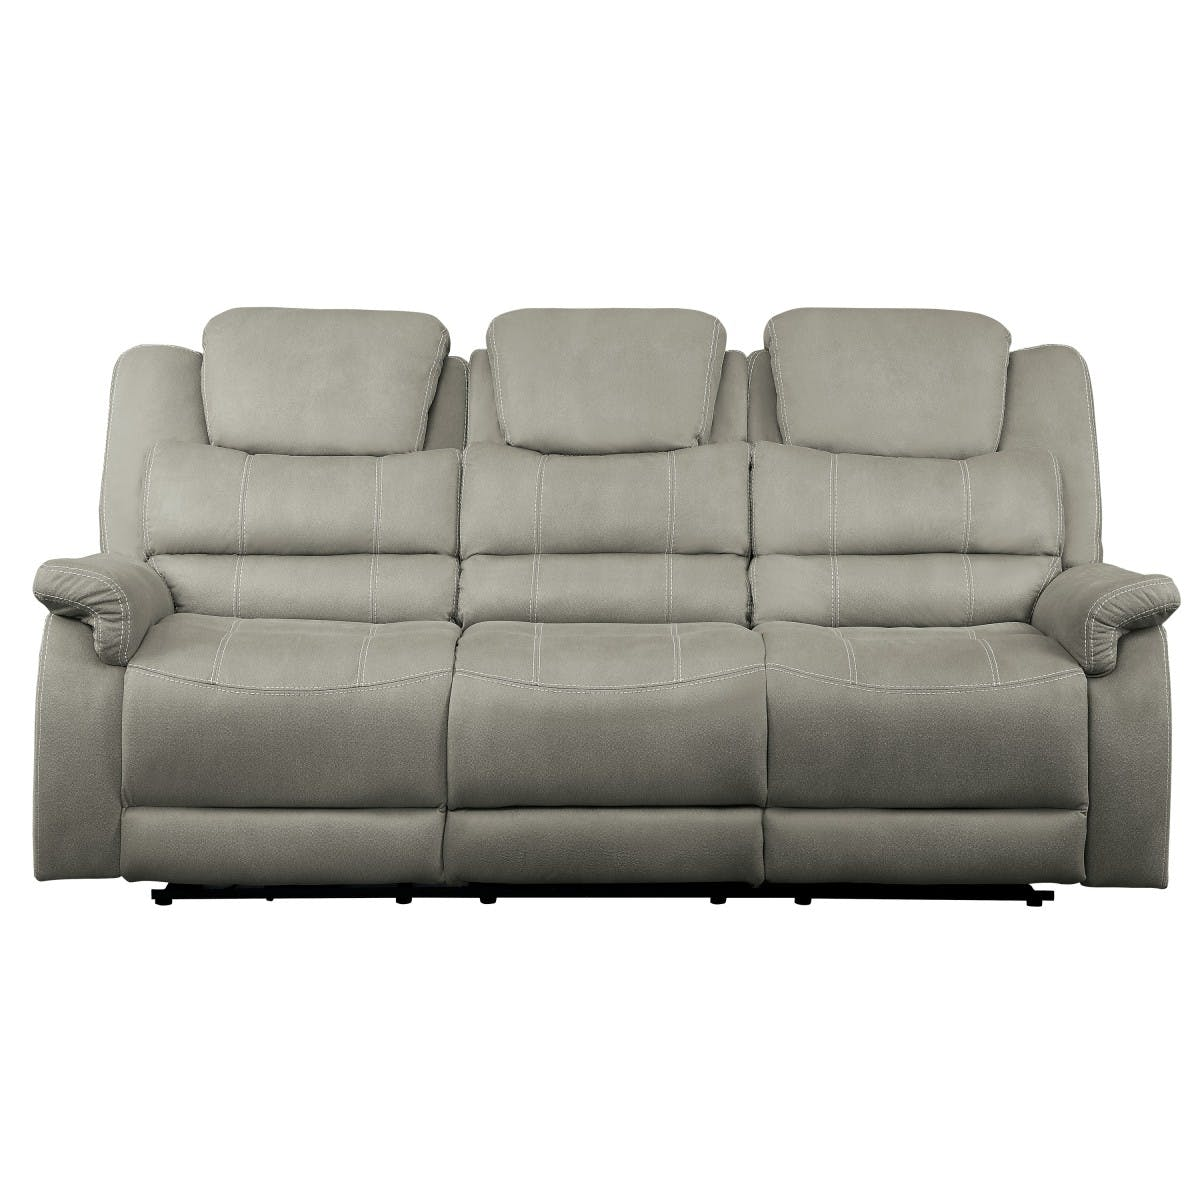 Picture of: Homelegance Living Room Double Reclining Sofa With Drop Down Cup Holders And Receptacles 9848gy 3